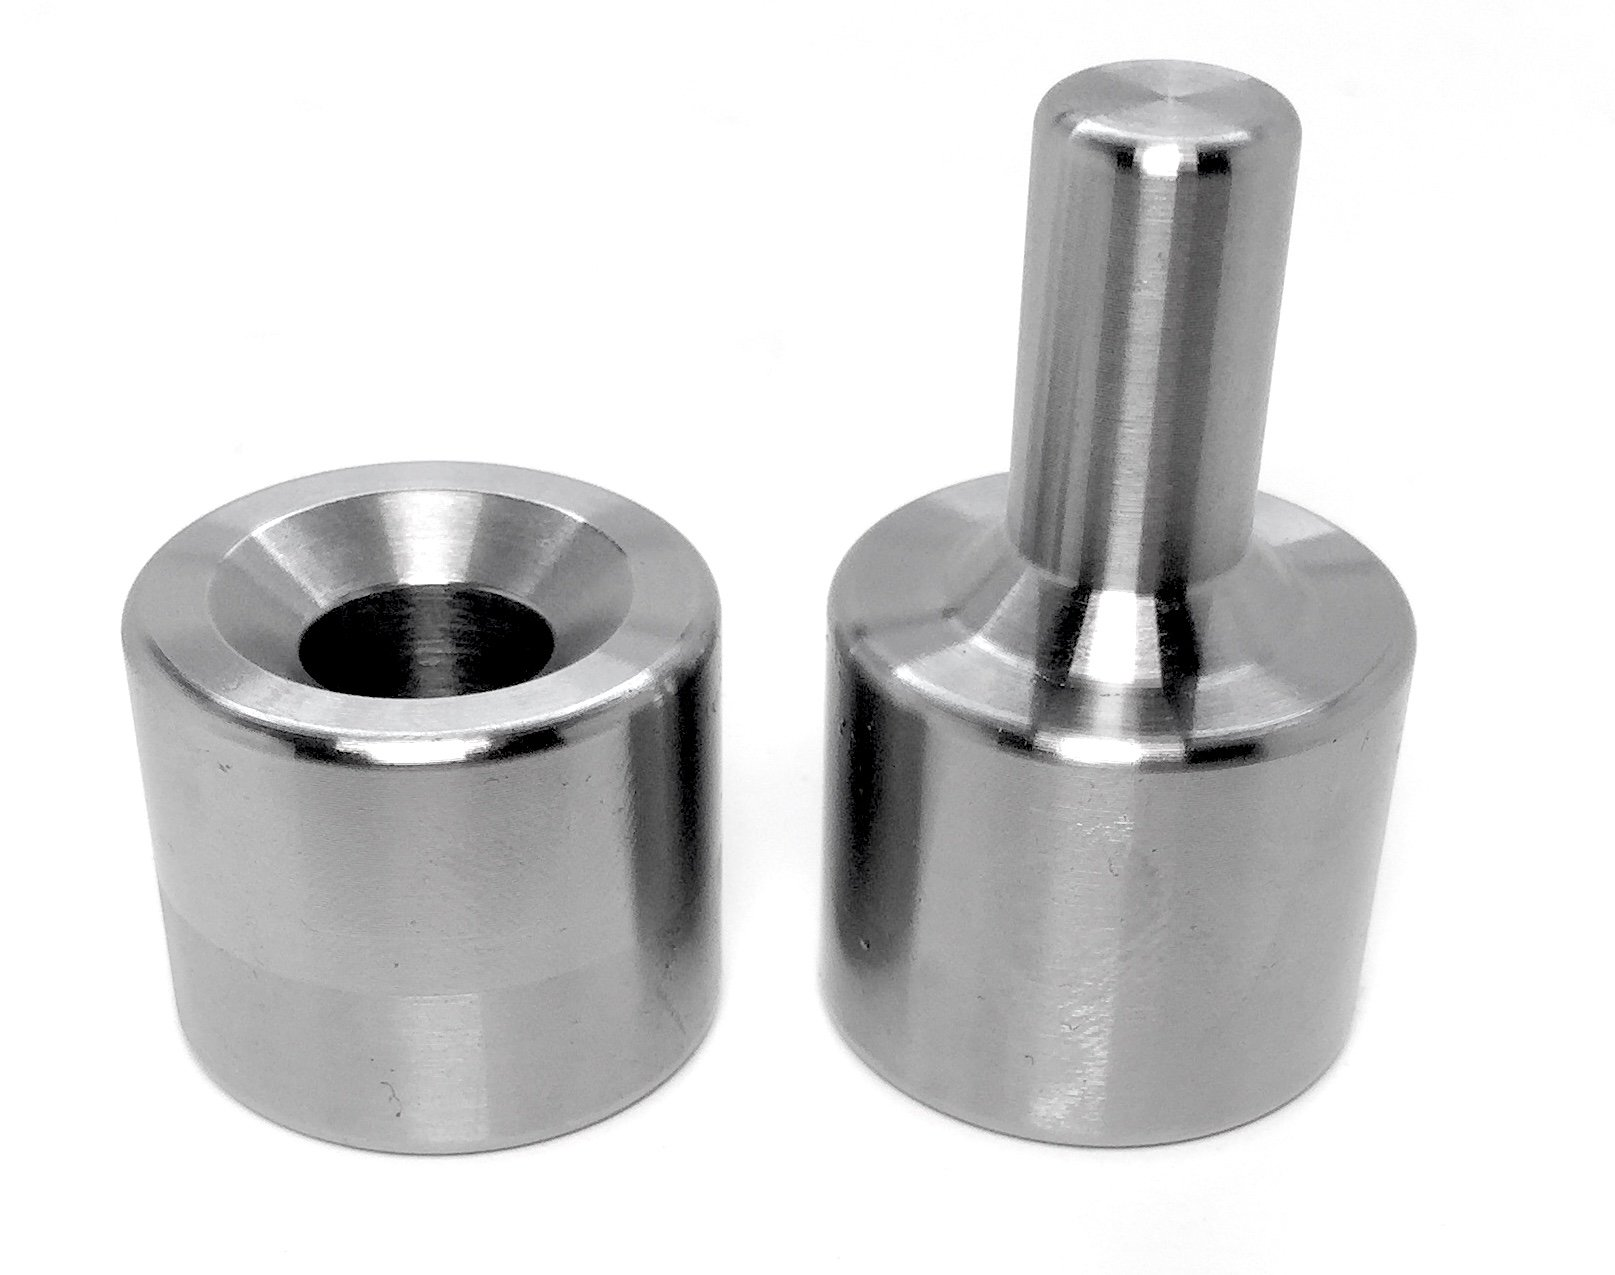 Dimple Dies for metal fabrication, multiple sizes to choose from (1'') by UTVDistribution